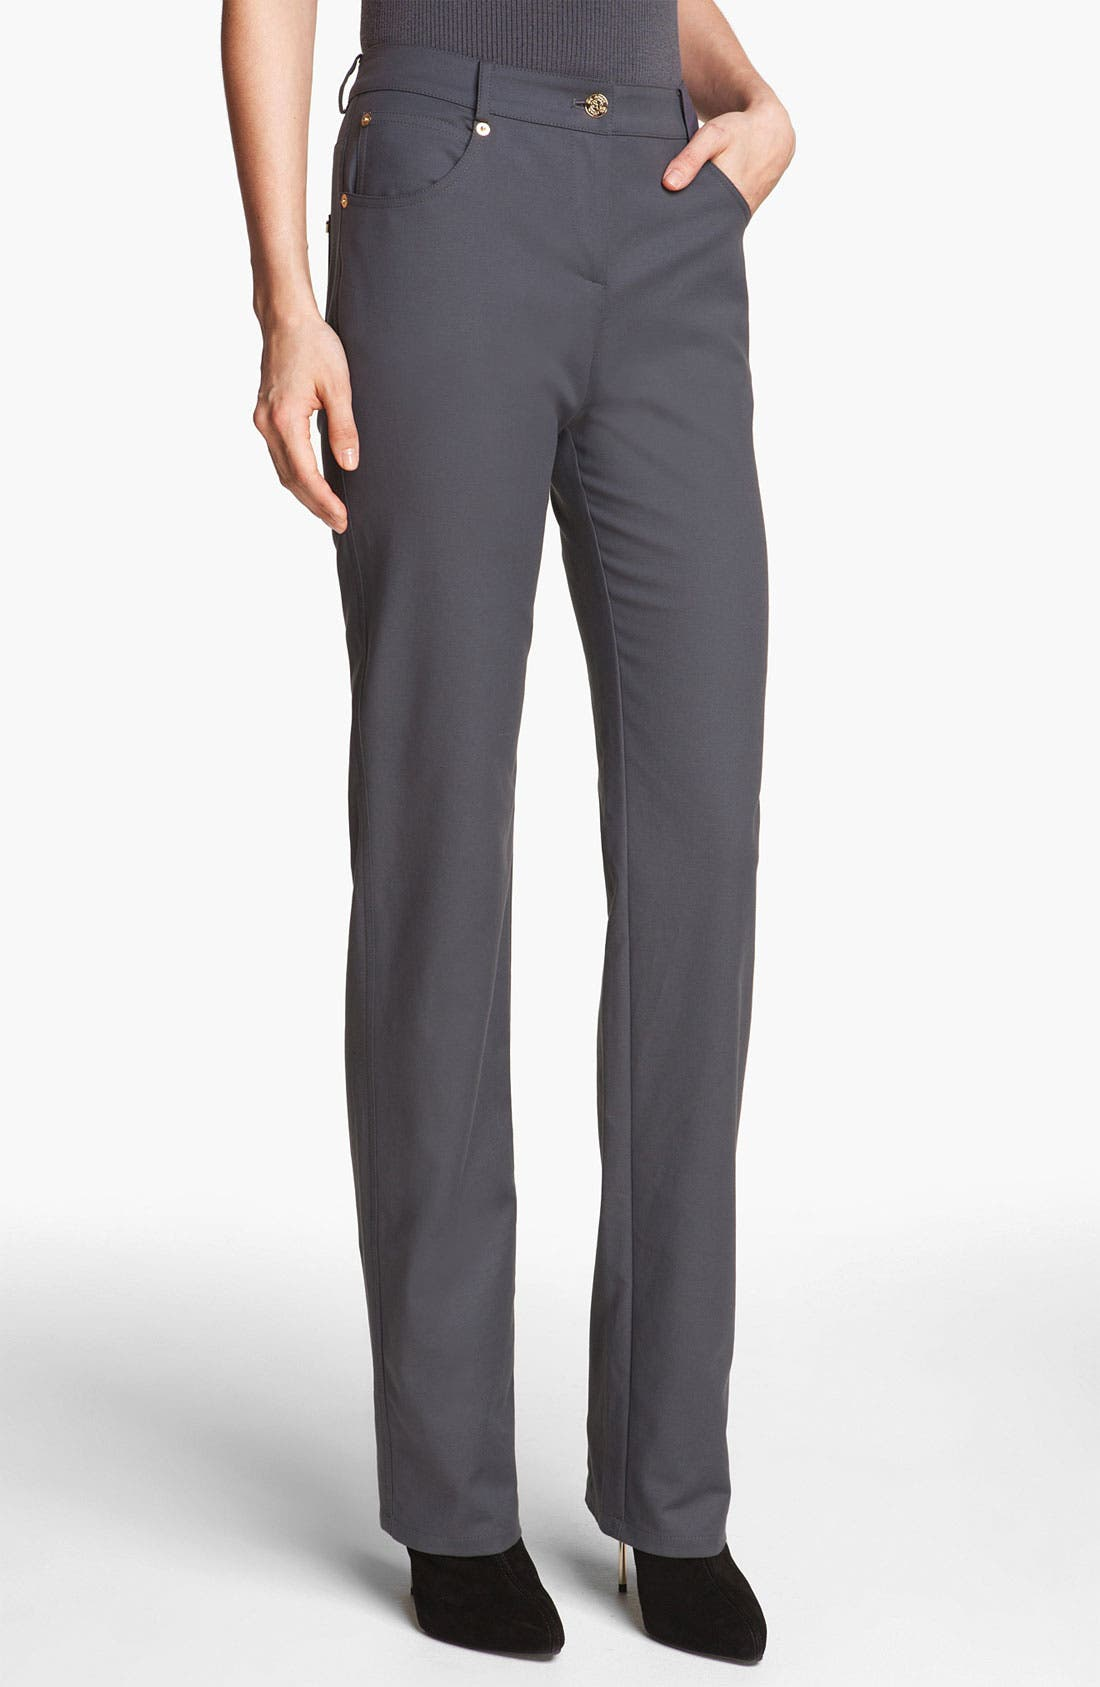 Alternate Image 1 Selected - St. John Yellow Label 'Marie' Double Weave Stretch Cotton Pants